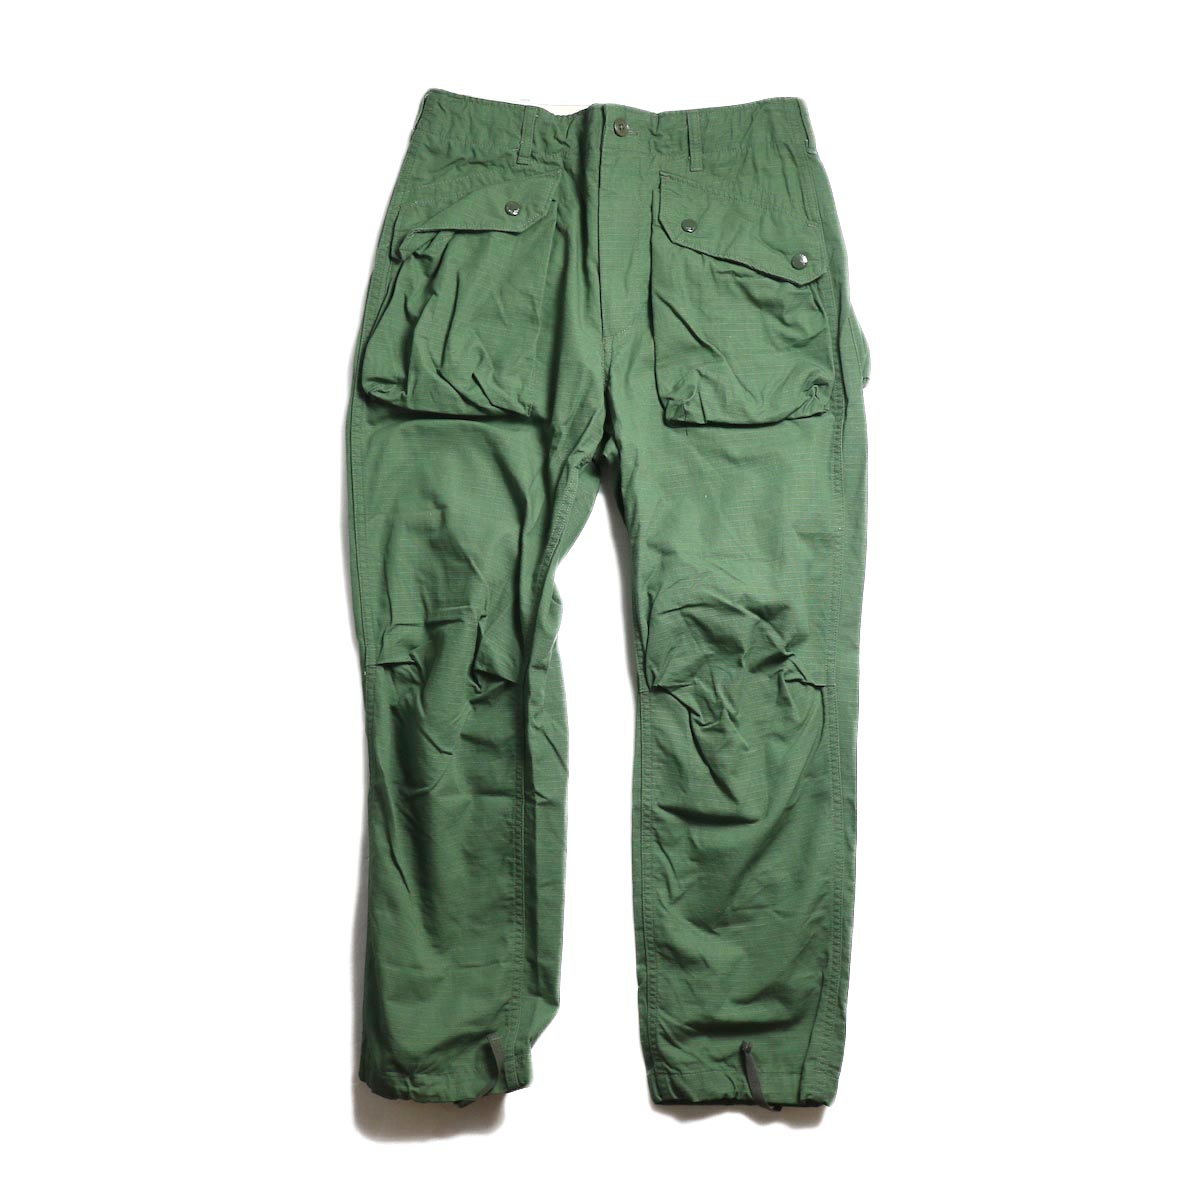 ENGINEERED GARMENTS / Norwegian Pant -Cotton Ripstop (Olive)